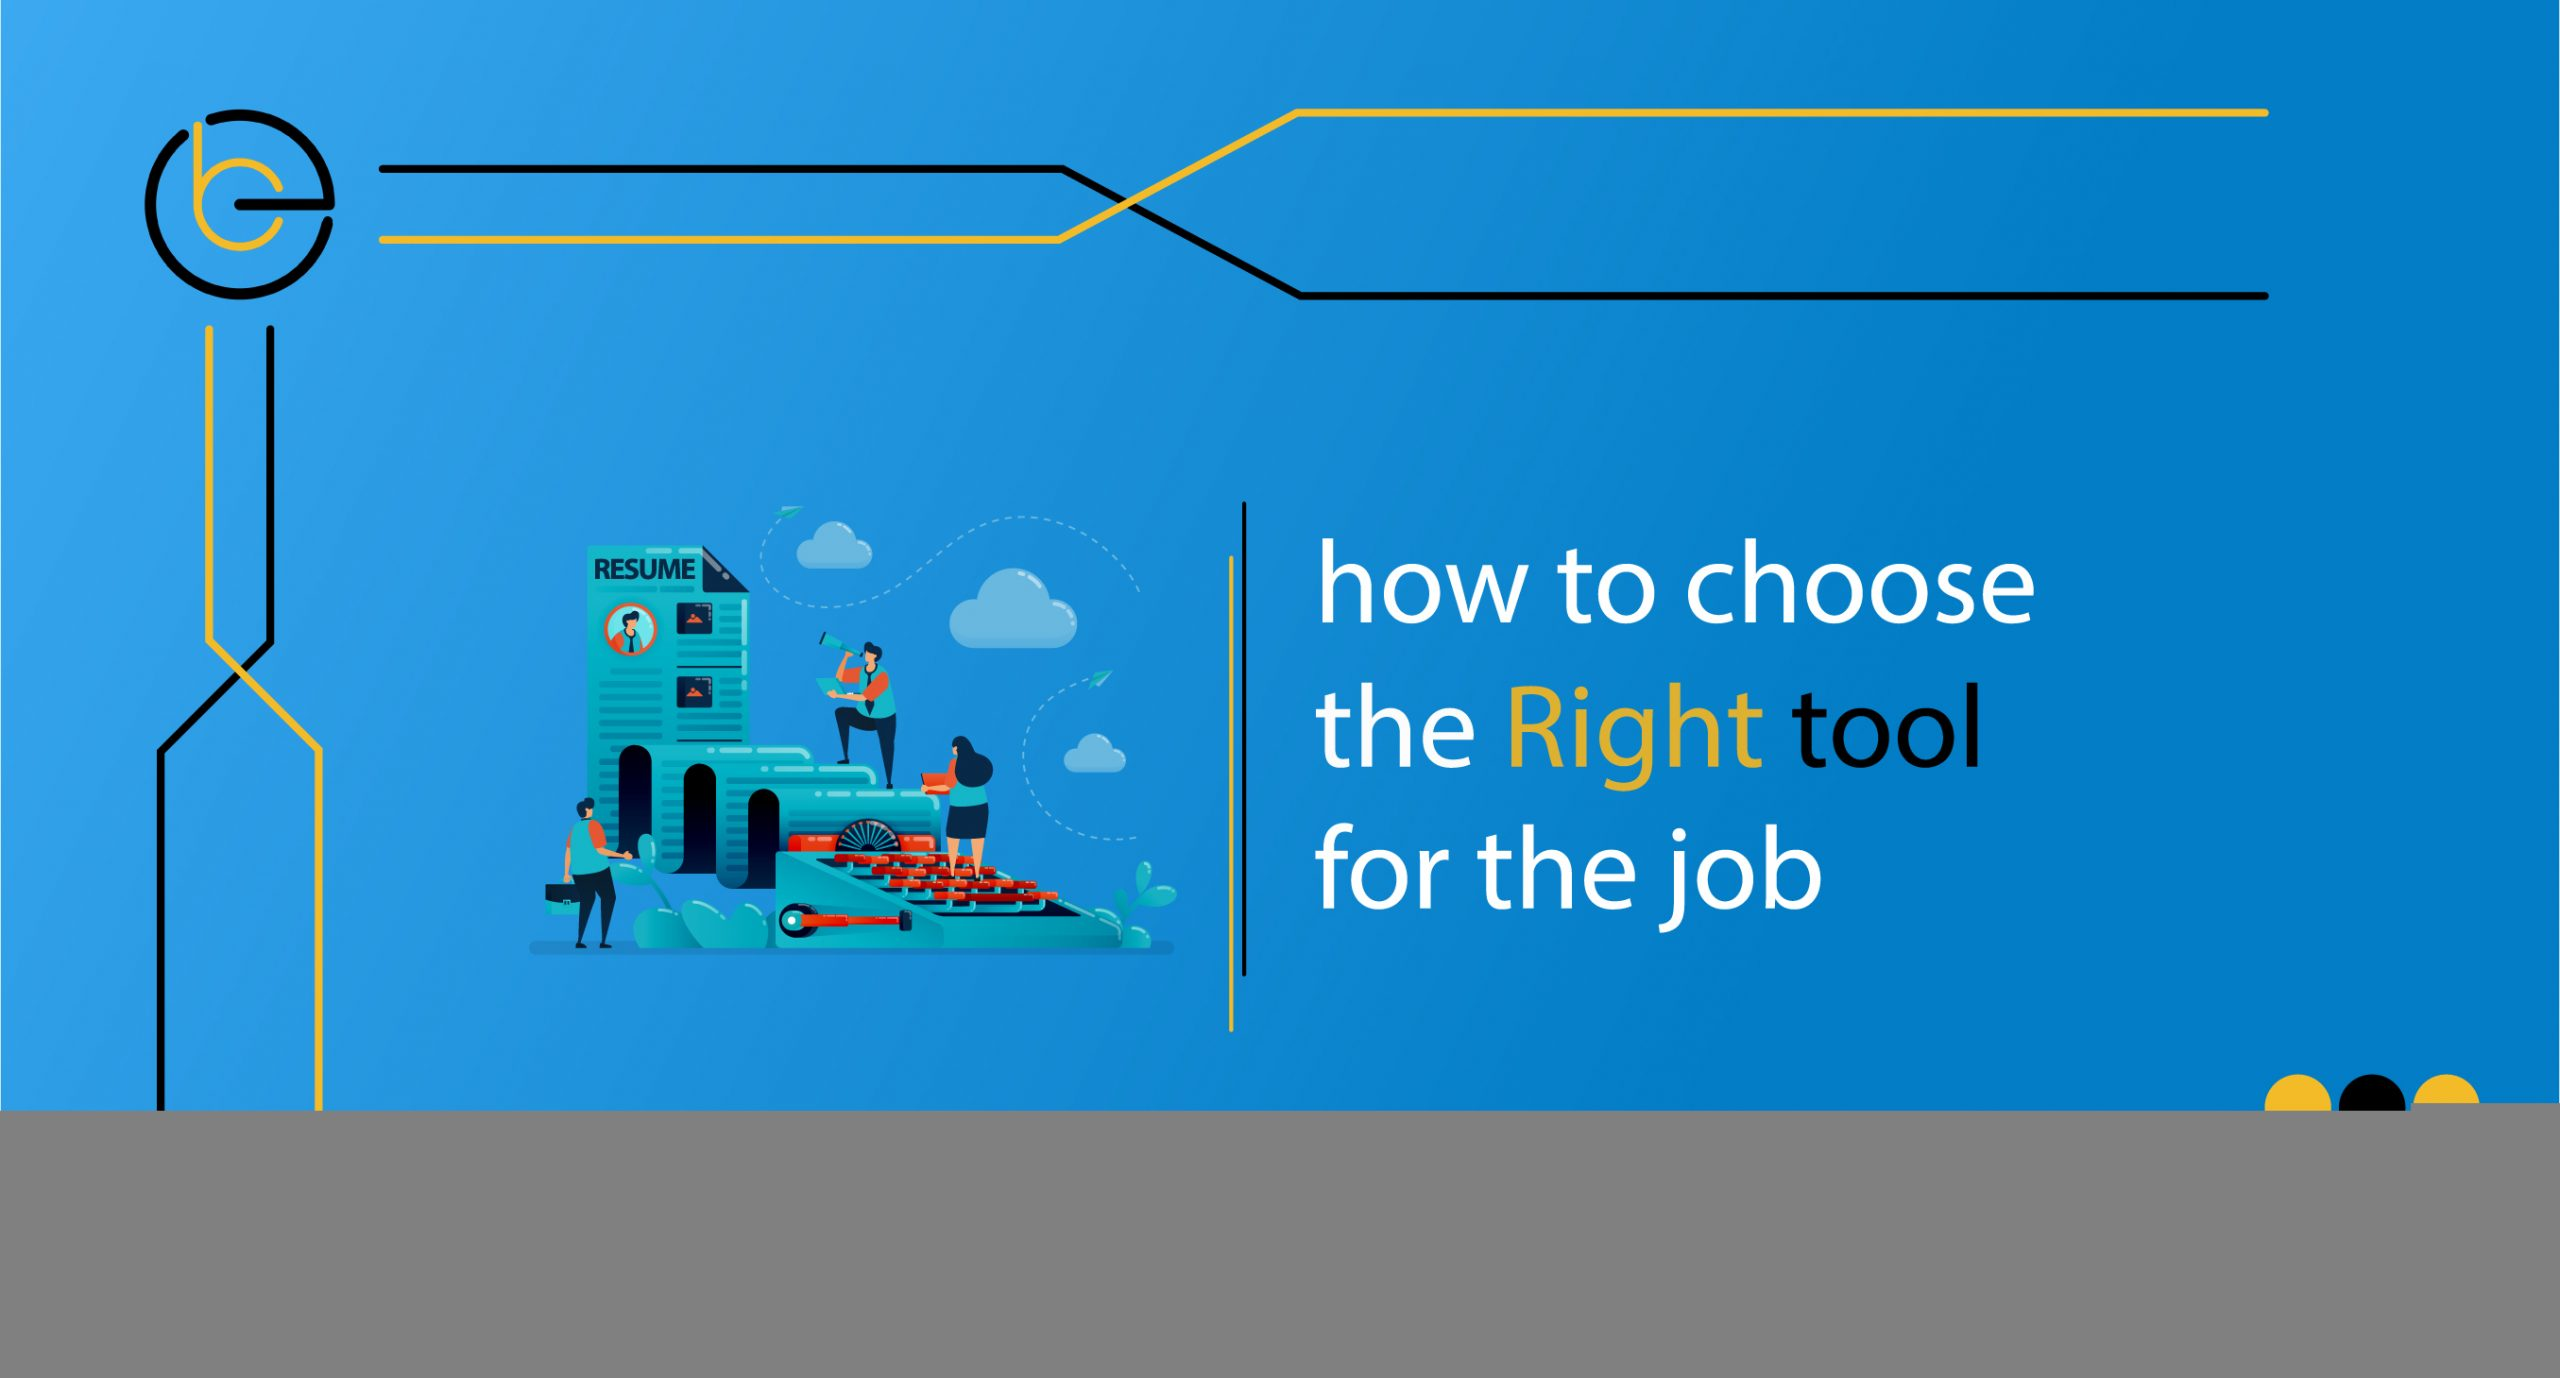 choose the right tool for job